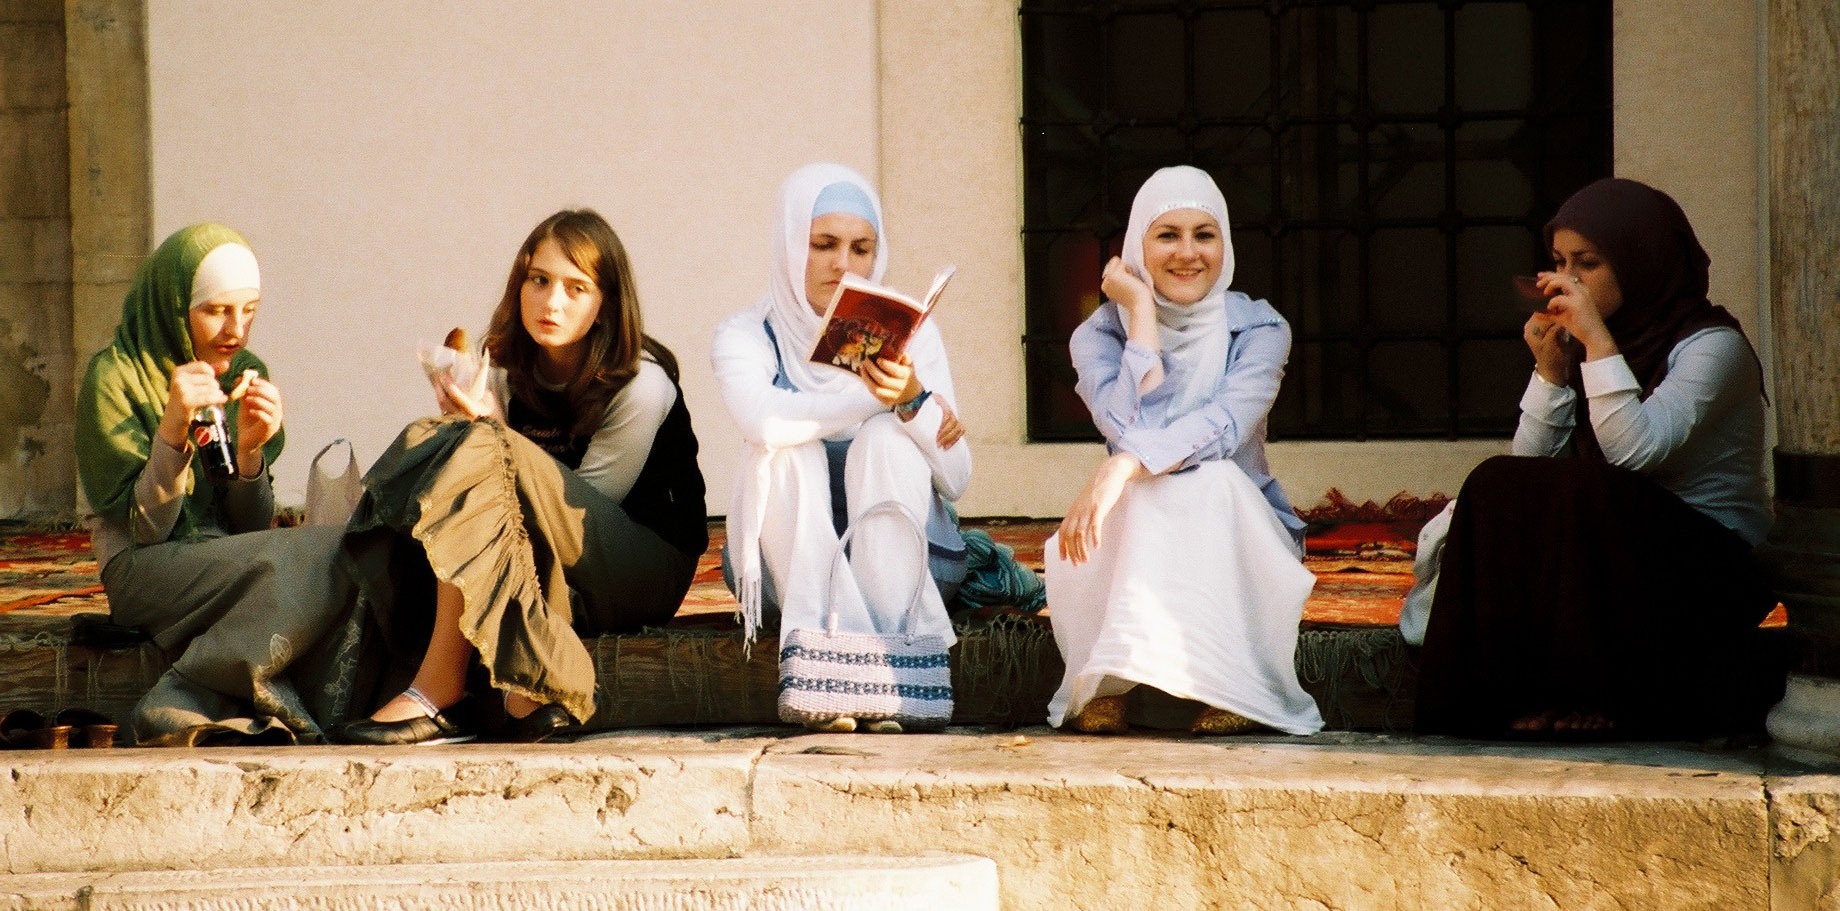 Girls chatting in Sarajevo, Bosnia - by Kashfi Halford